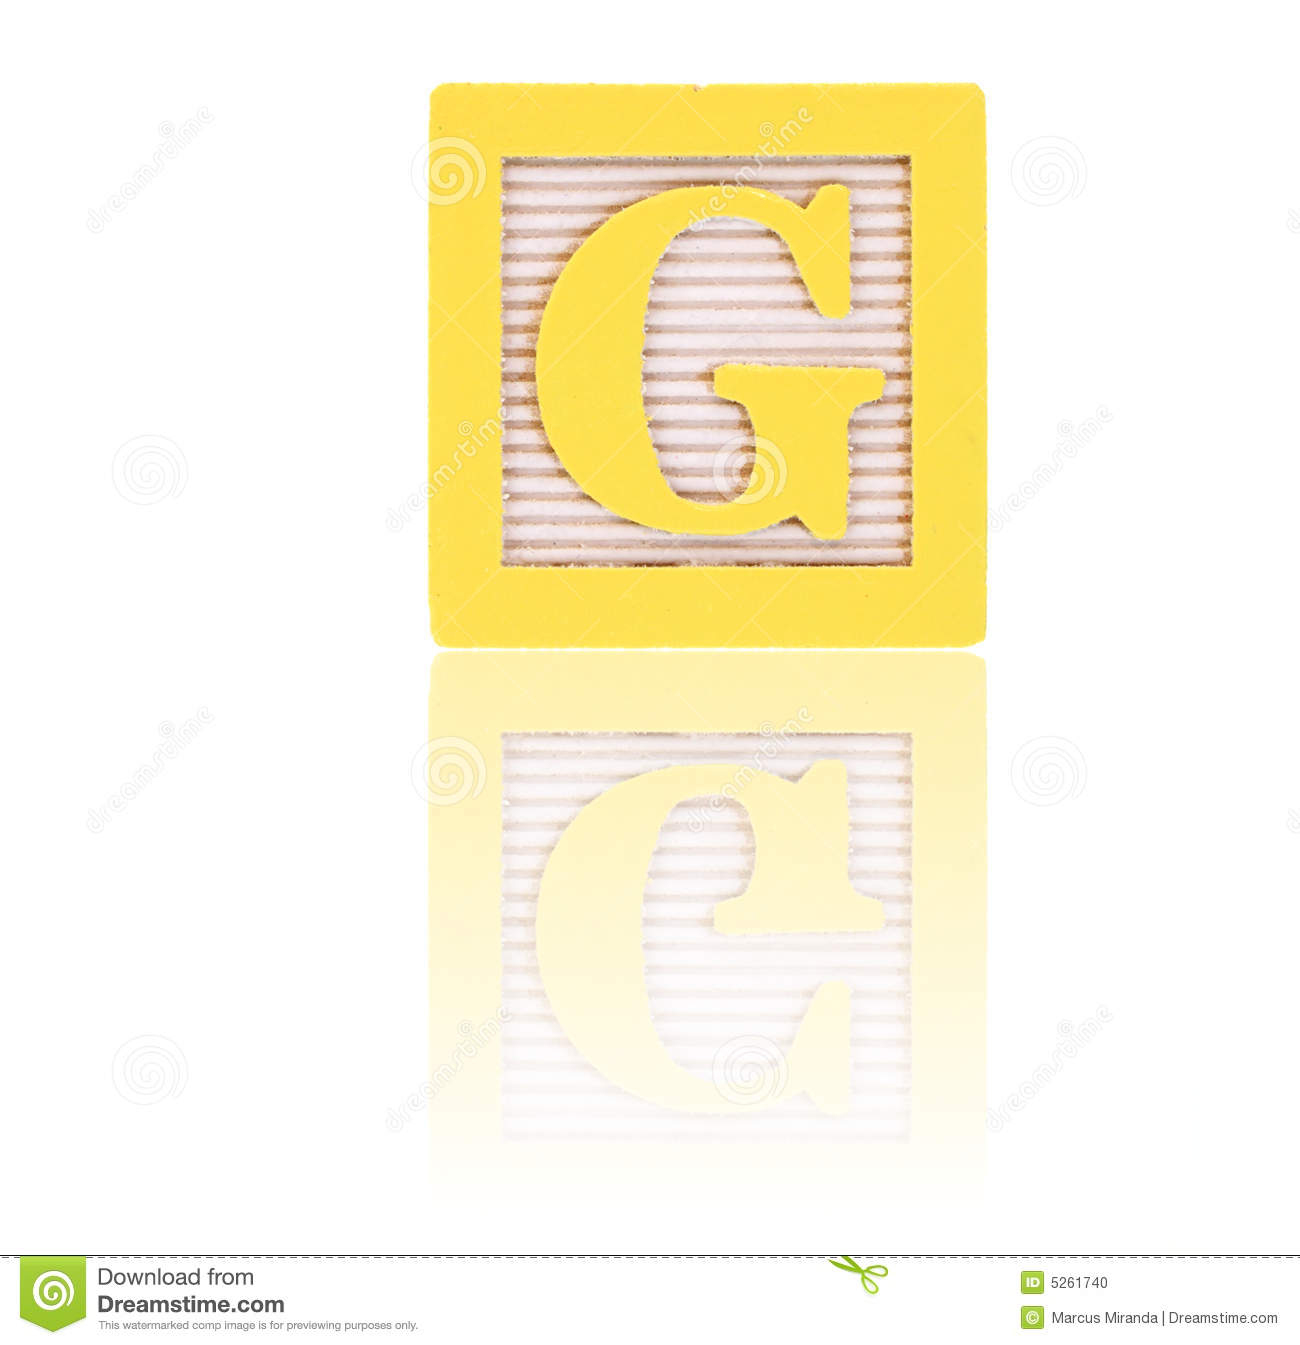 Letter g in an alphabet wood block on a reflective surface.